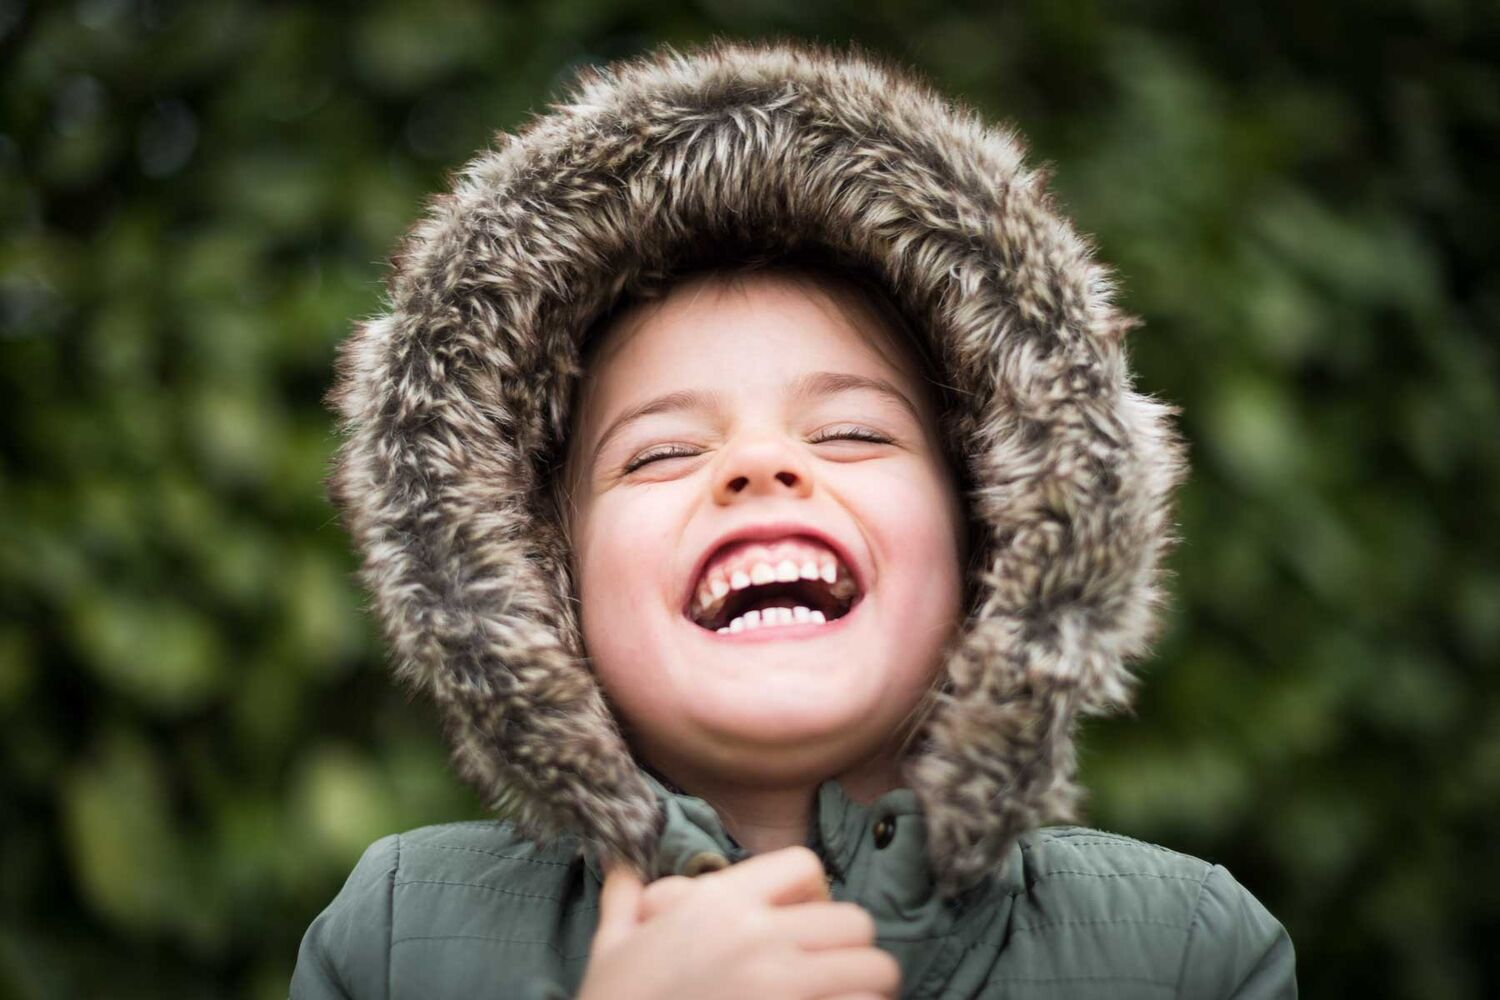 Child Wearing Jacket With Furry Hood Laughing With Eyes Closed